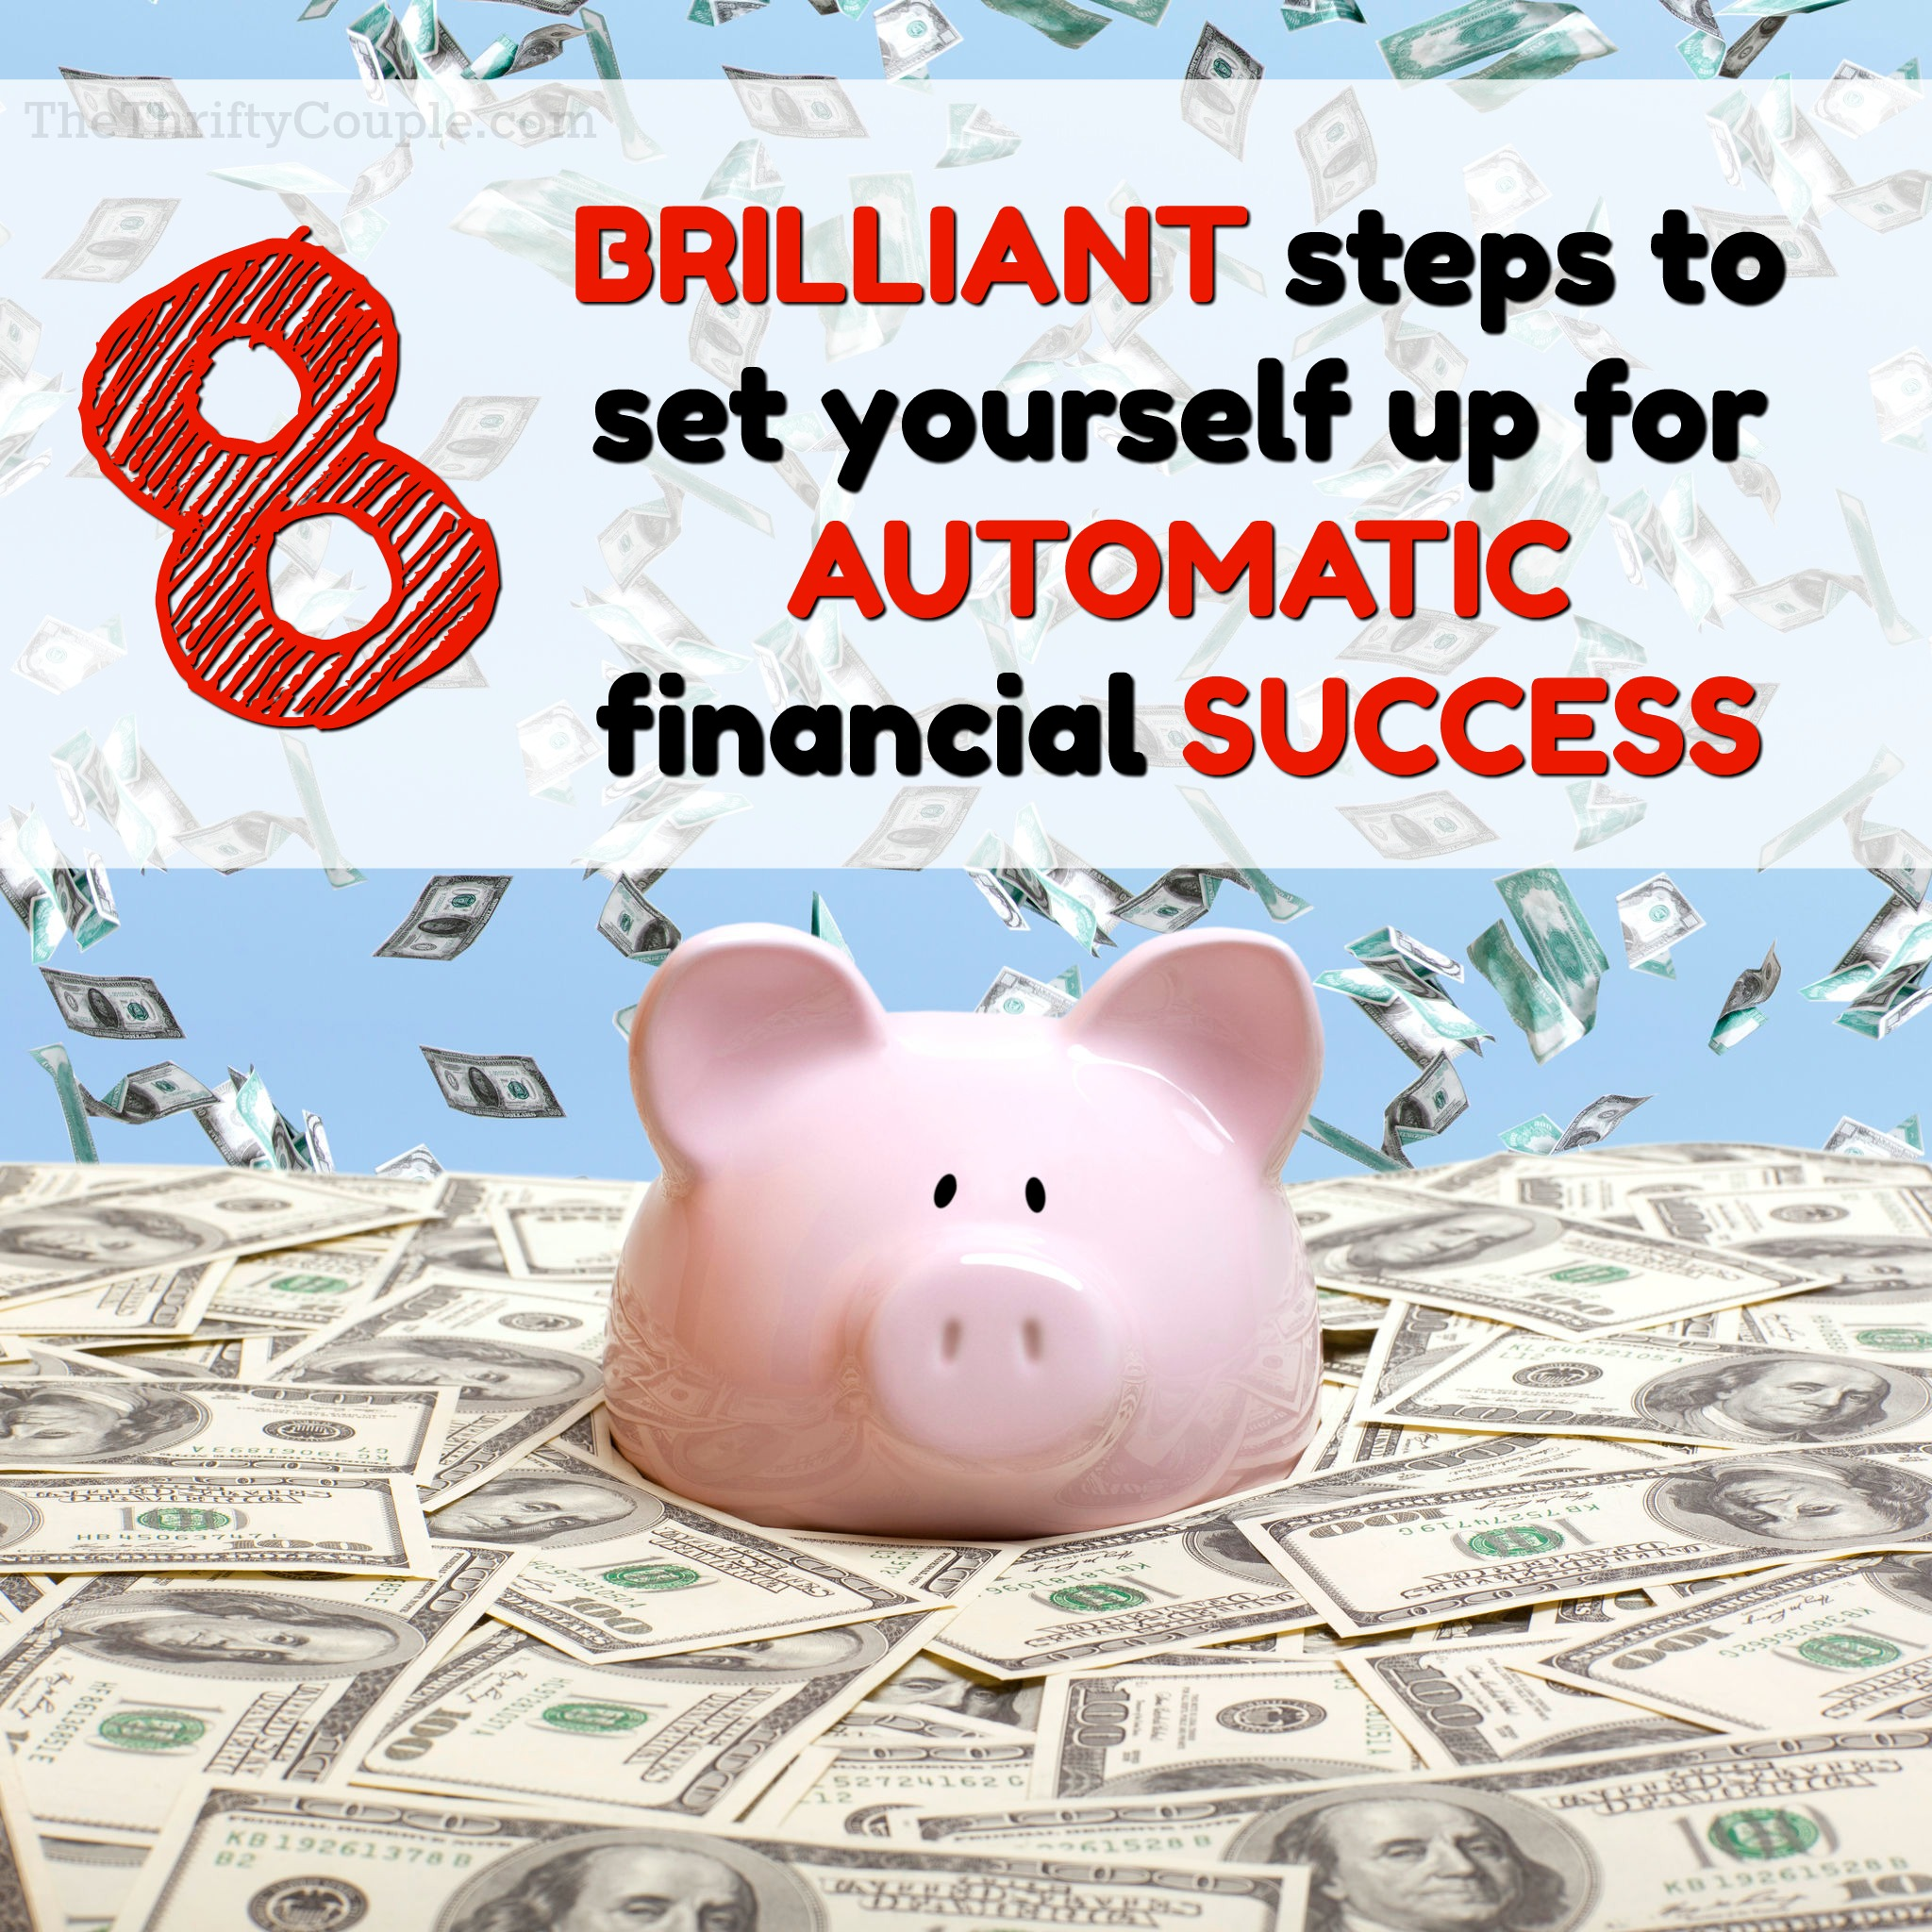 TTC 010 8 Ways to Set Yourself Up For Automatic Financial Success